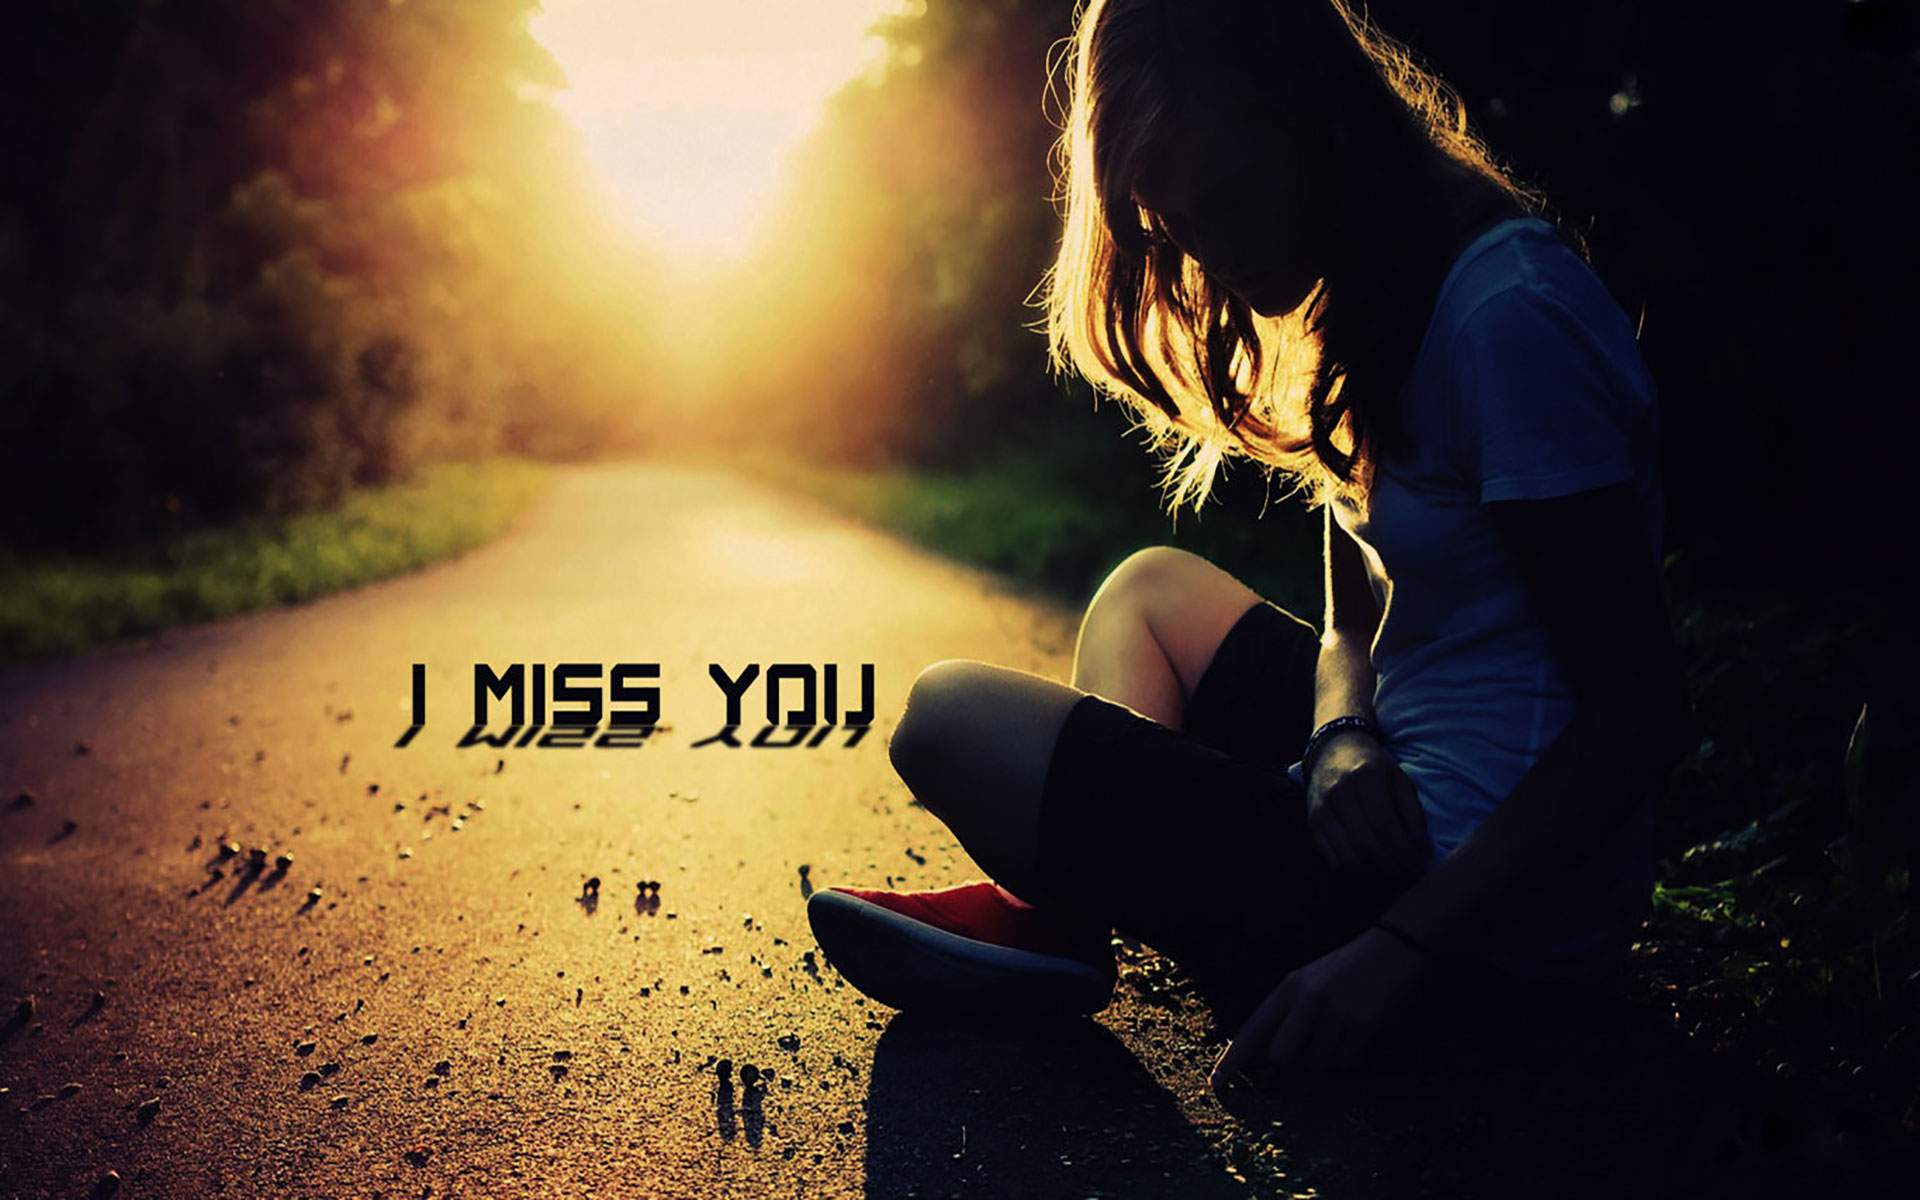 HD I Miss You Wallpaper for him or herRomantic Wallpaperschobirdokan